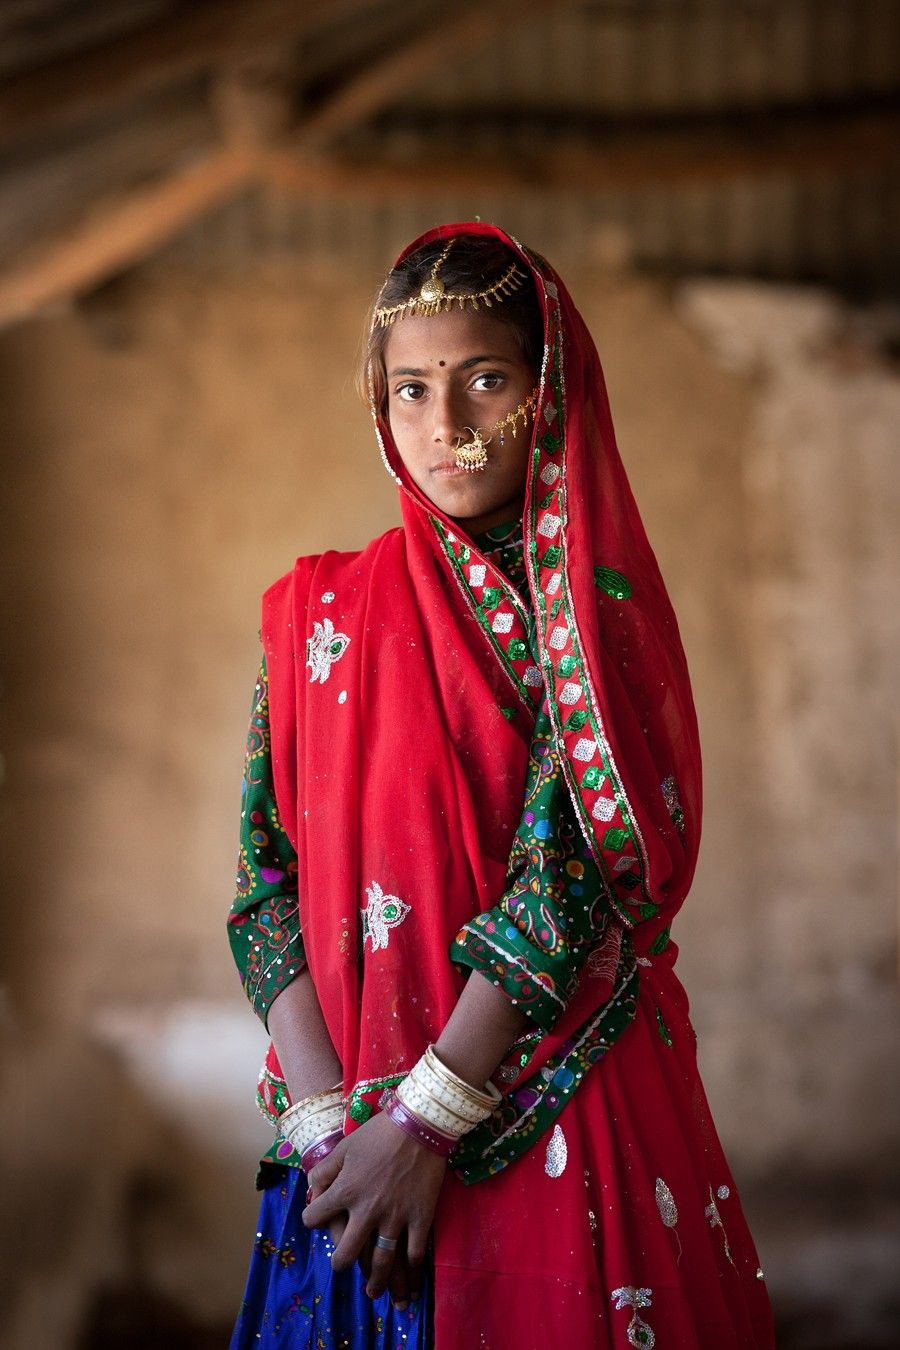 Faces from Around the World | India